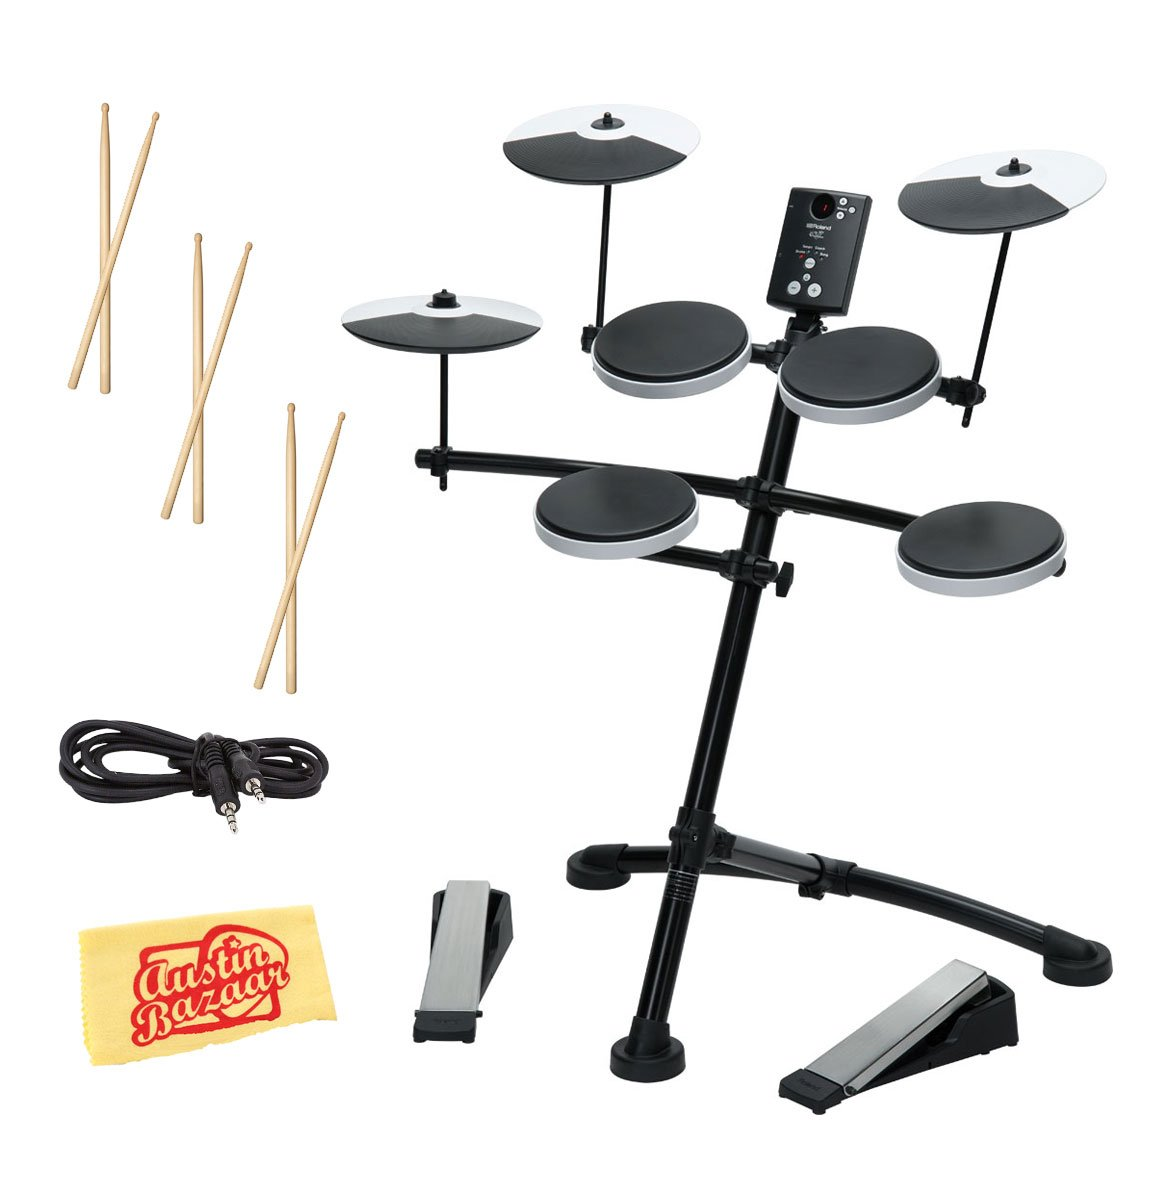 Roland TD-1K Electronic Drum Set Bundle with 3 Pairs of Sticks, Audio Cable, and Austin Bazaar Polishing Cloth